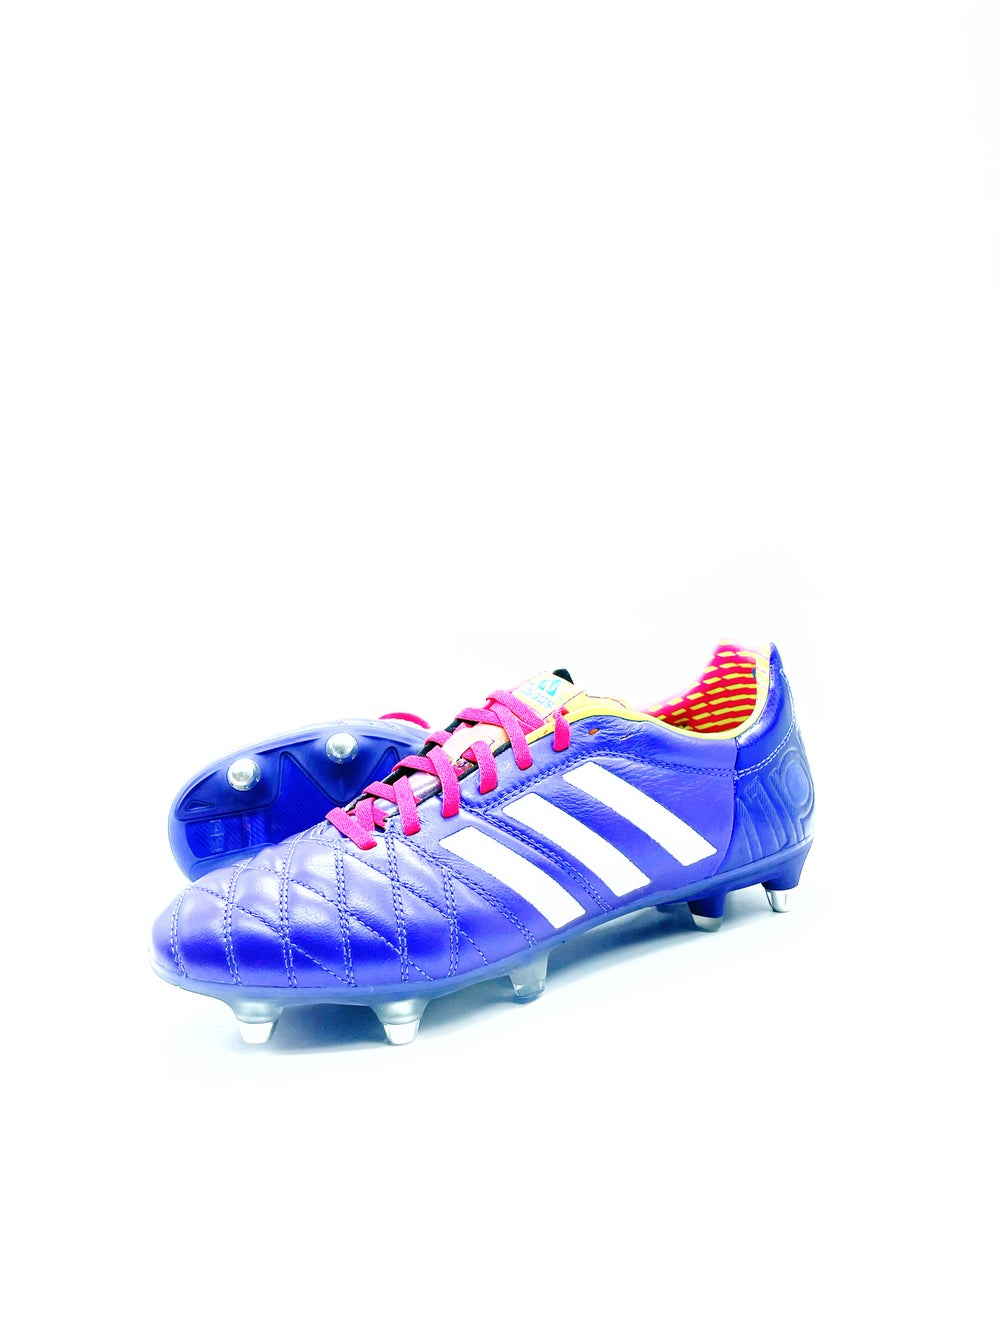 Image of Adidas 11pro purple SG